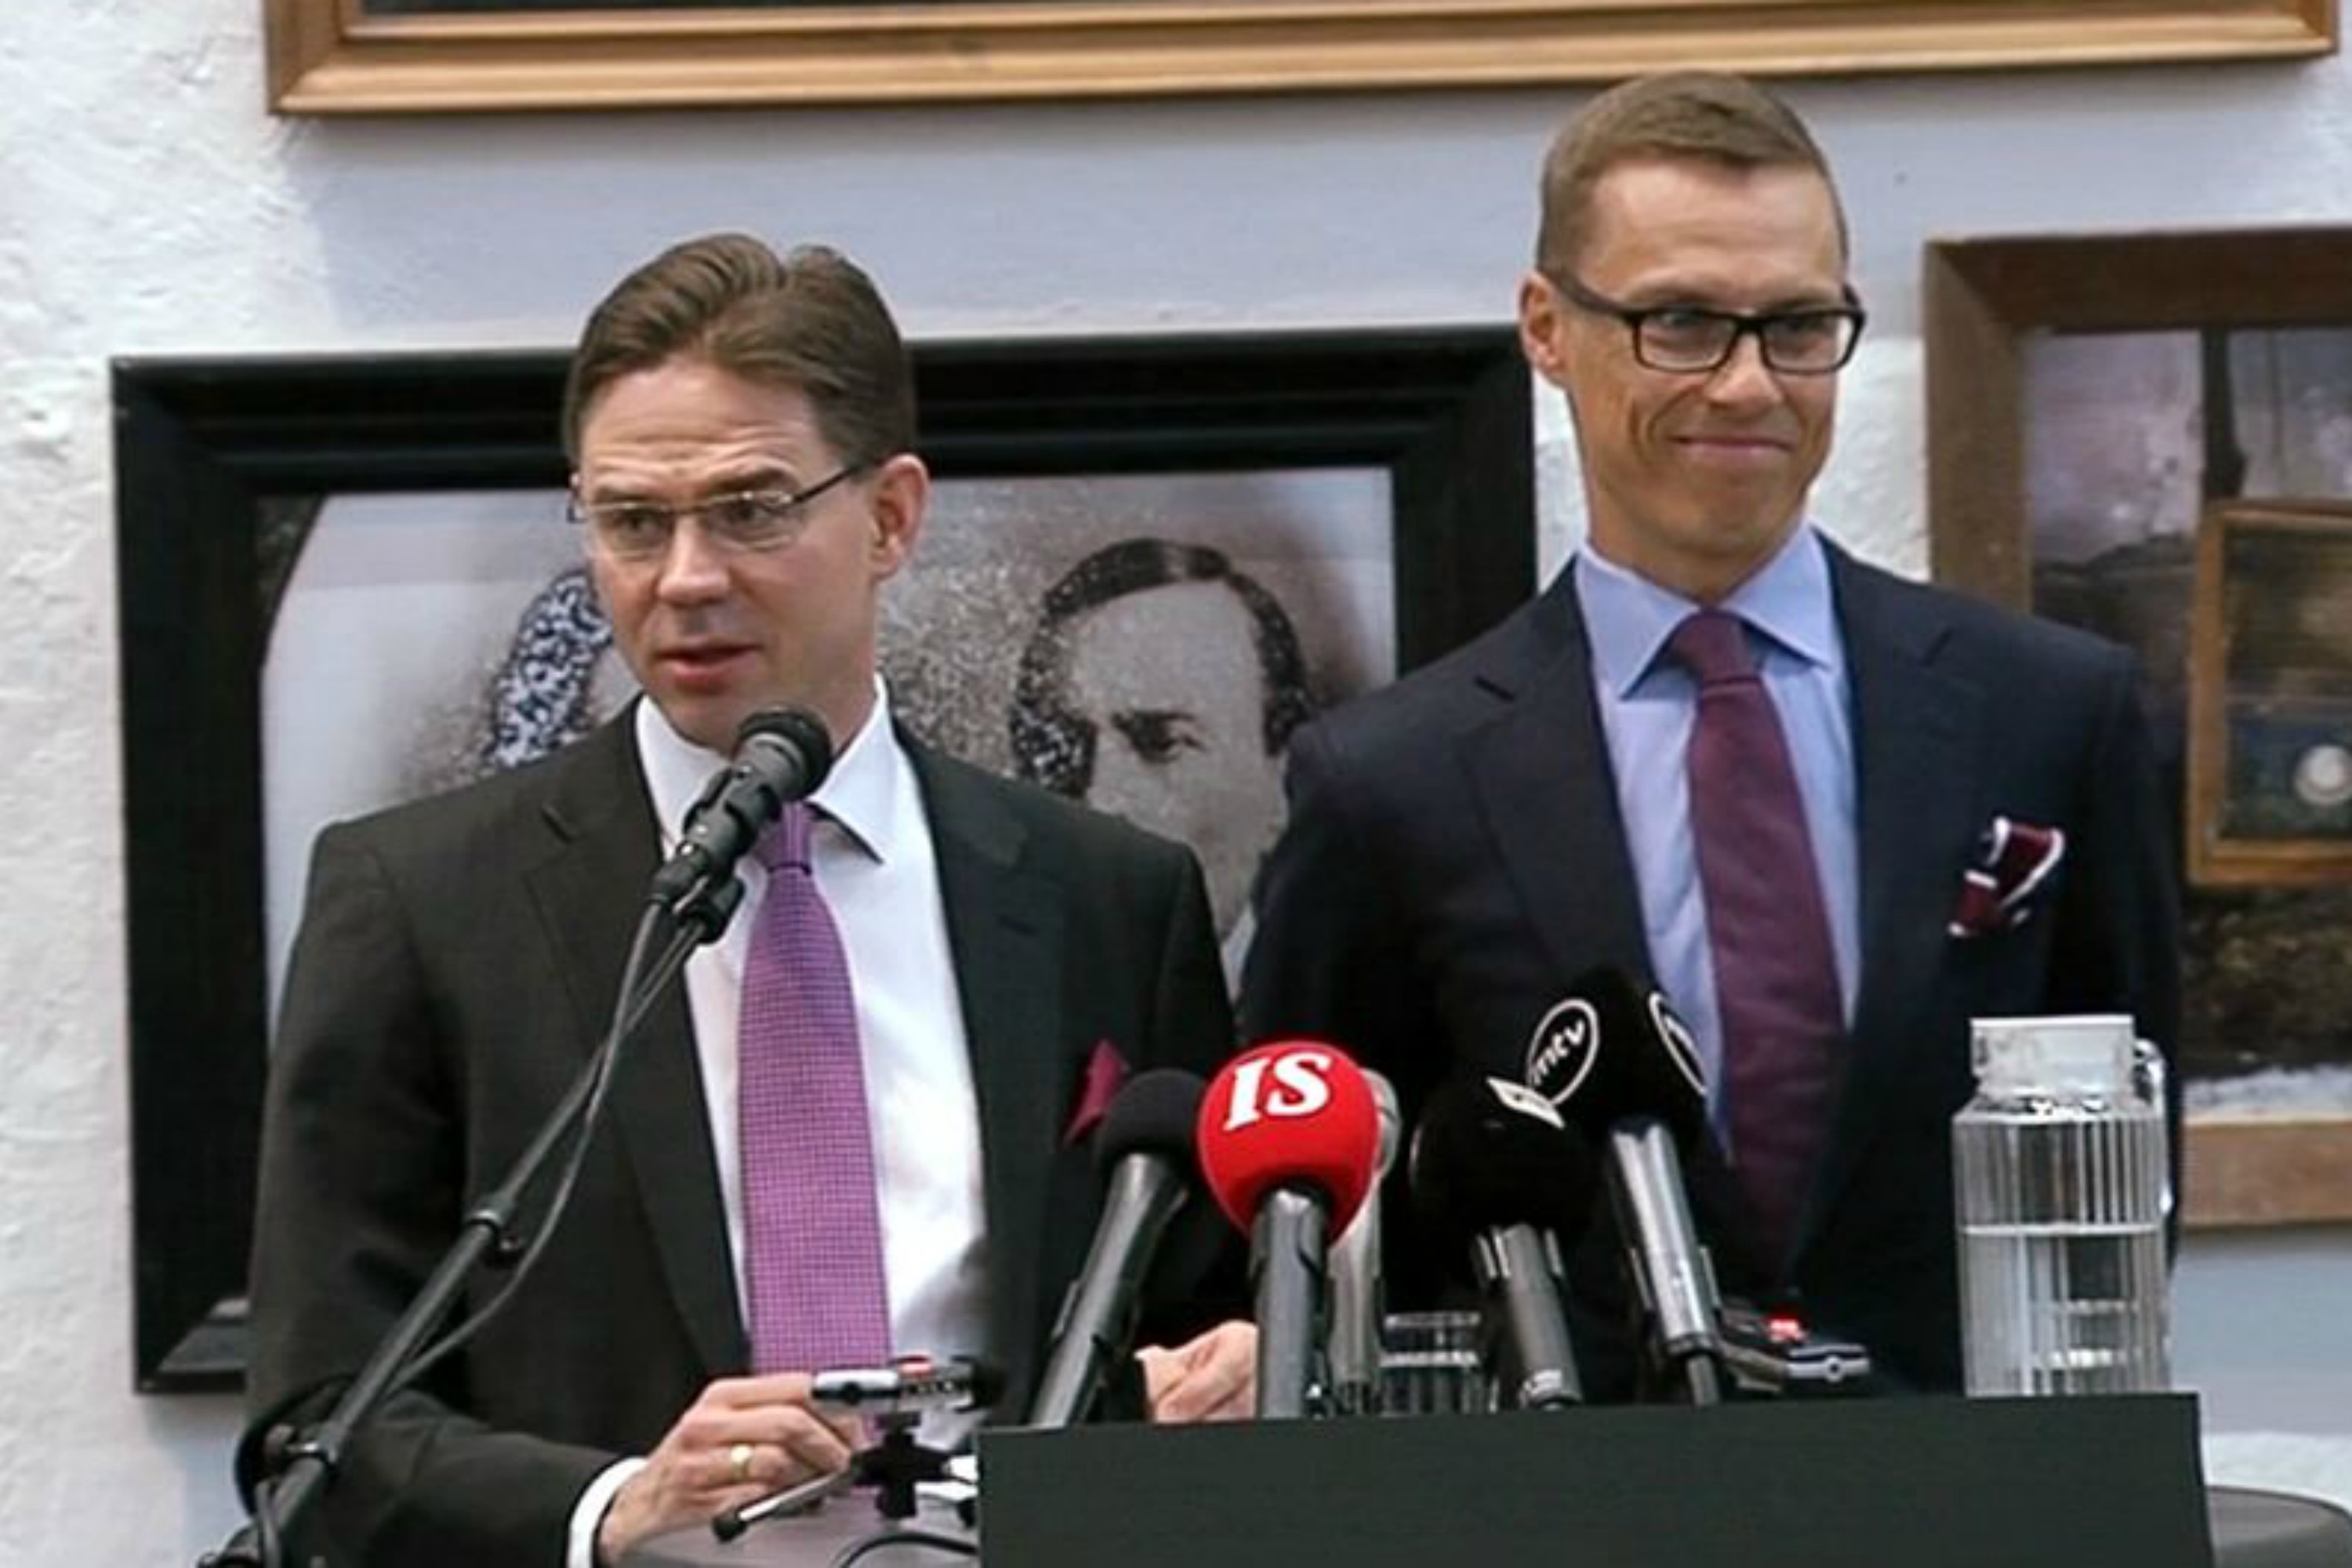 Jyrki Katainen [L] and Alexander Stubb. Photo Yle